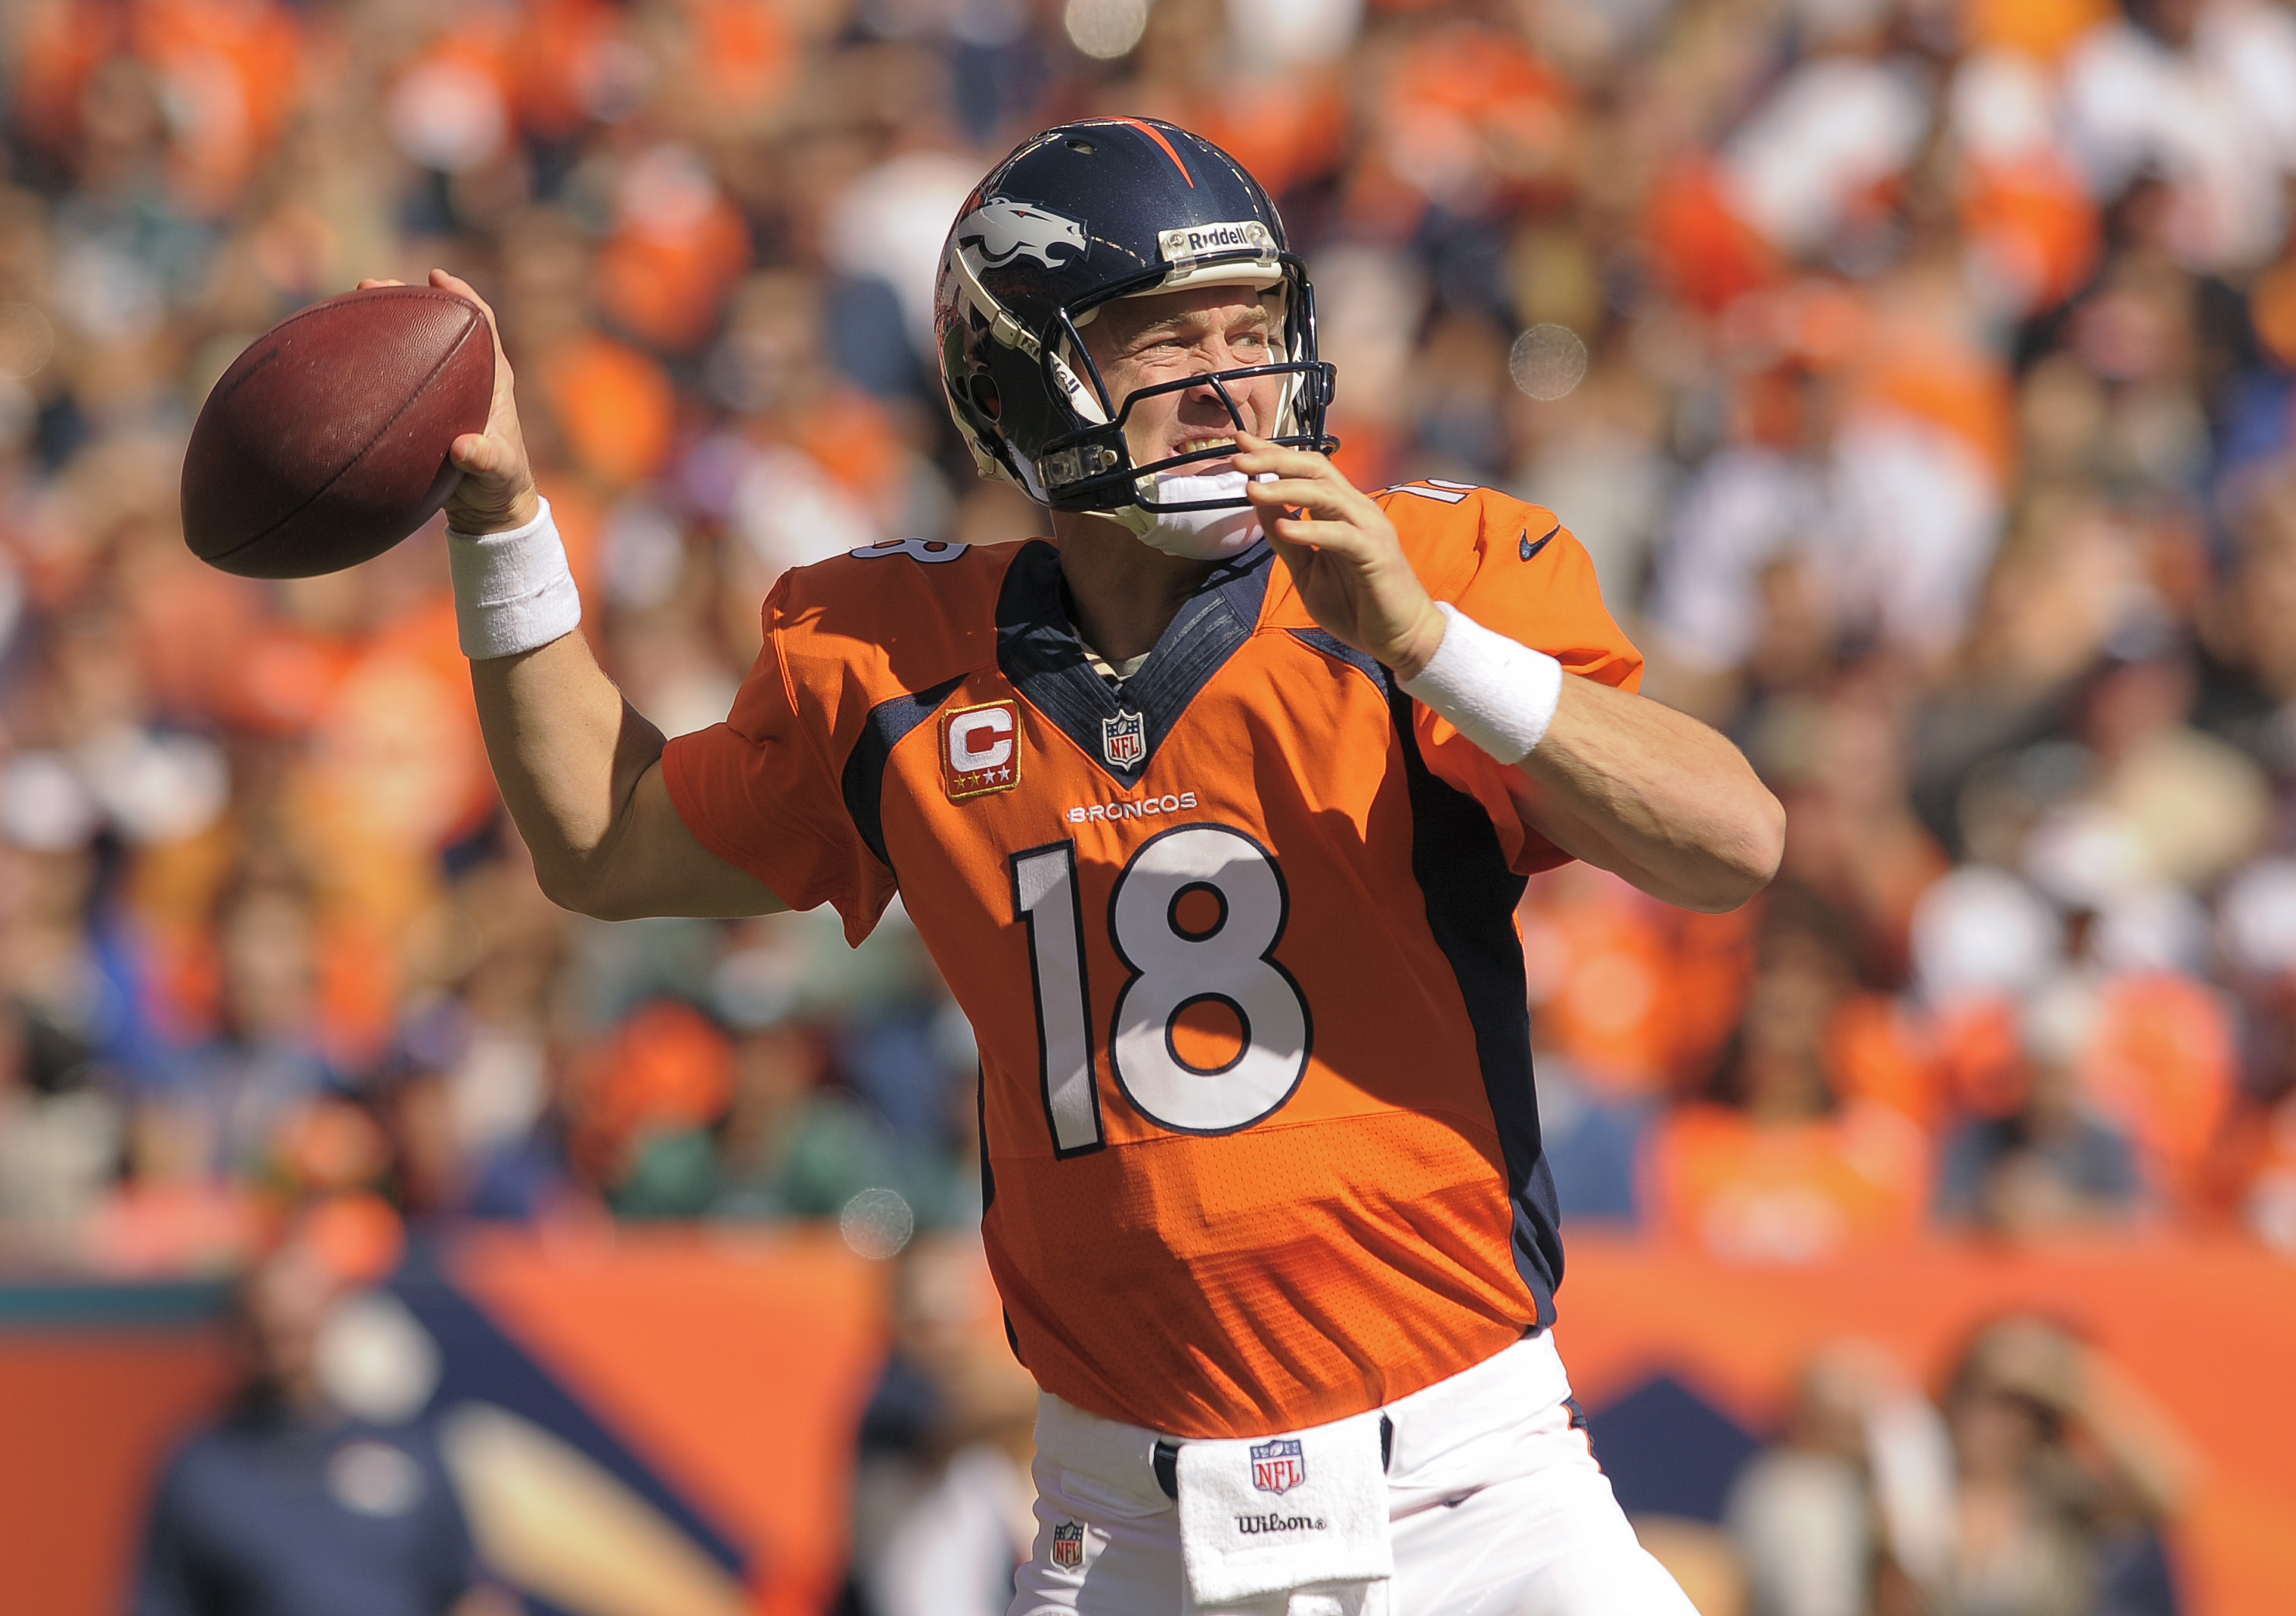 Denver's Peyton Manning set the NFL mark for most touchdown passes (16) during the season's first month and joined Milt Plum as the only quarterbacks in history to throw that many TDs without an interception.